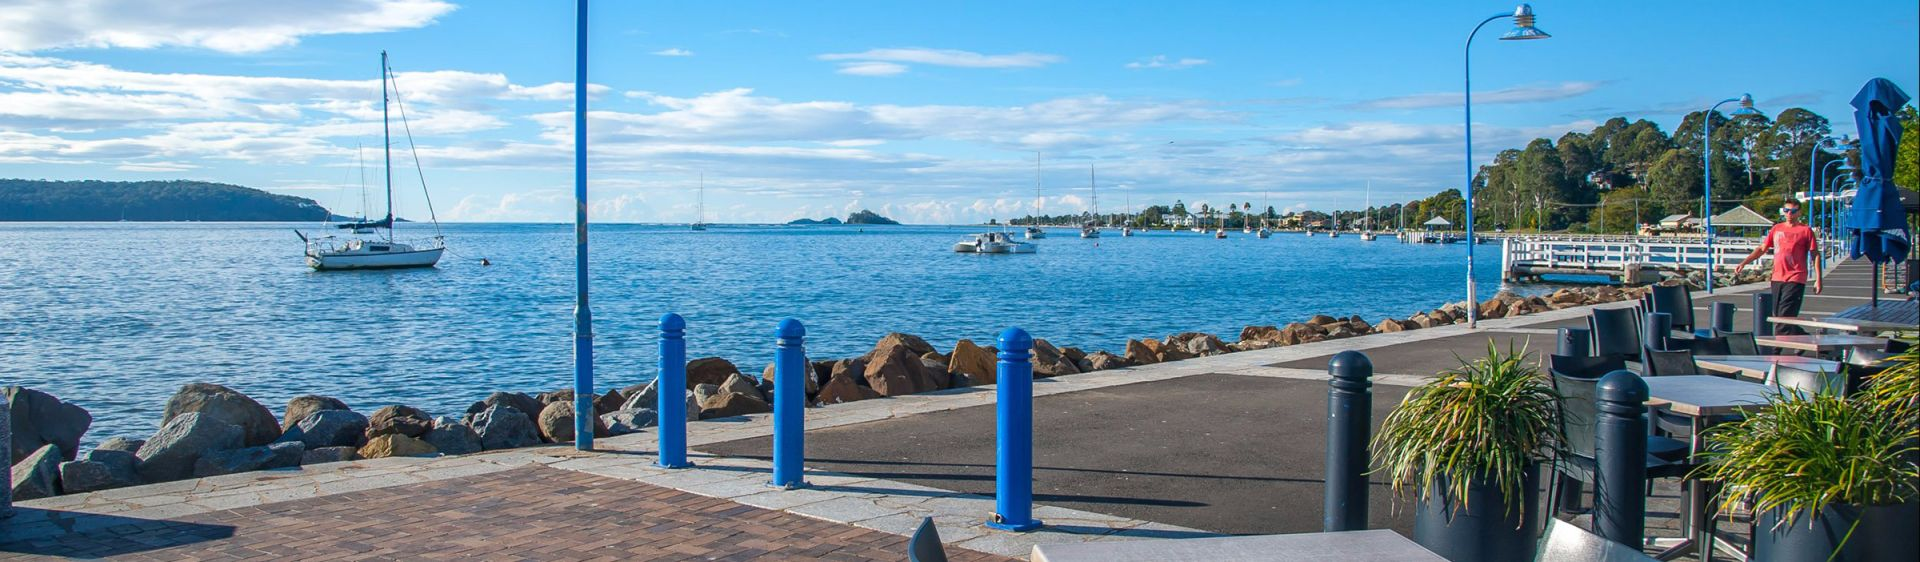 Murra Mia Walkway - Batemans Bay